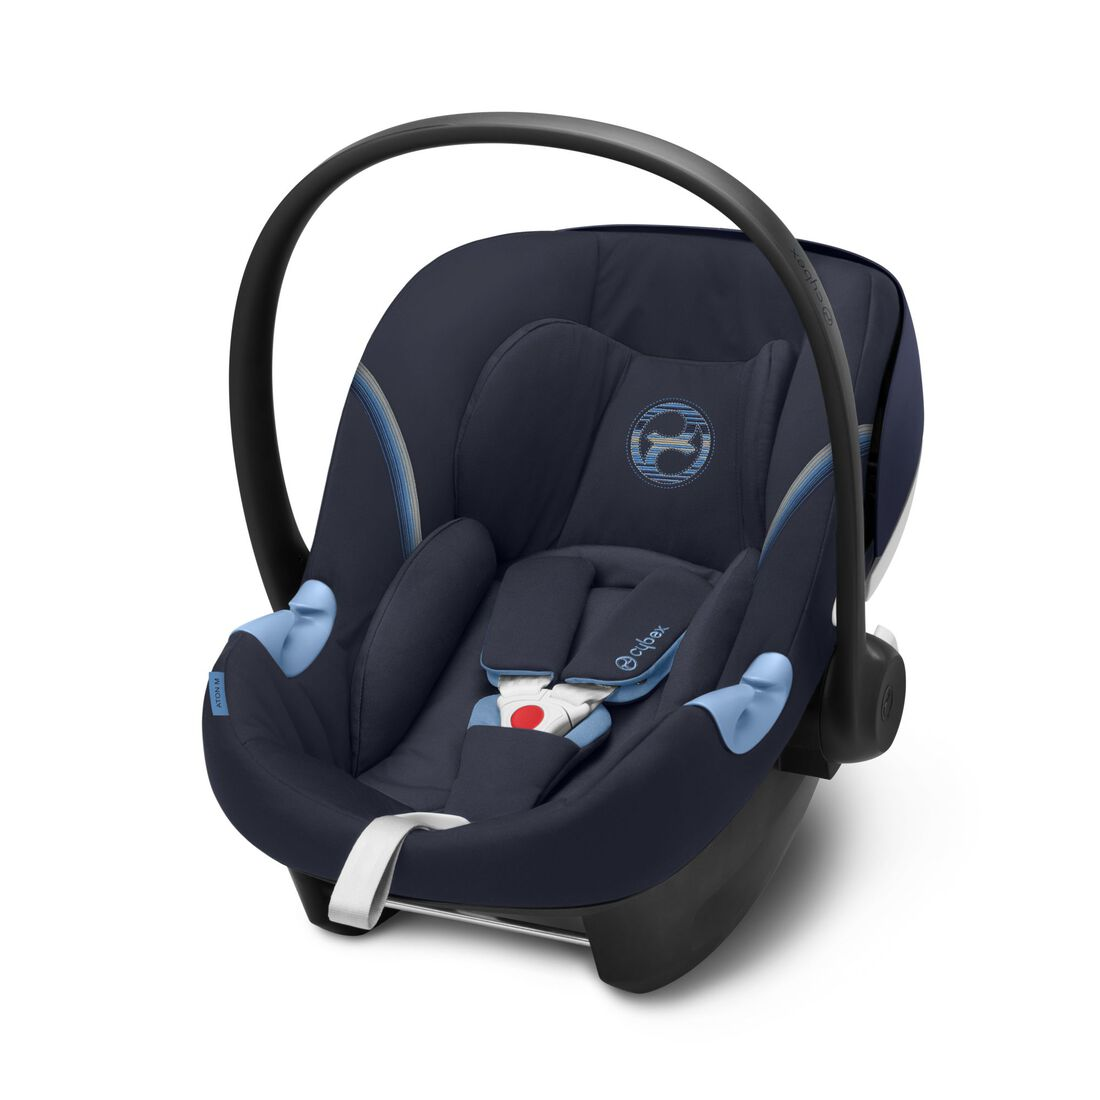 CYBEX Aton M i-Size - Navy Blue in Navy Blue large image number 1